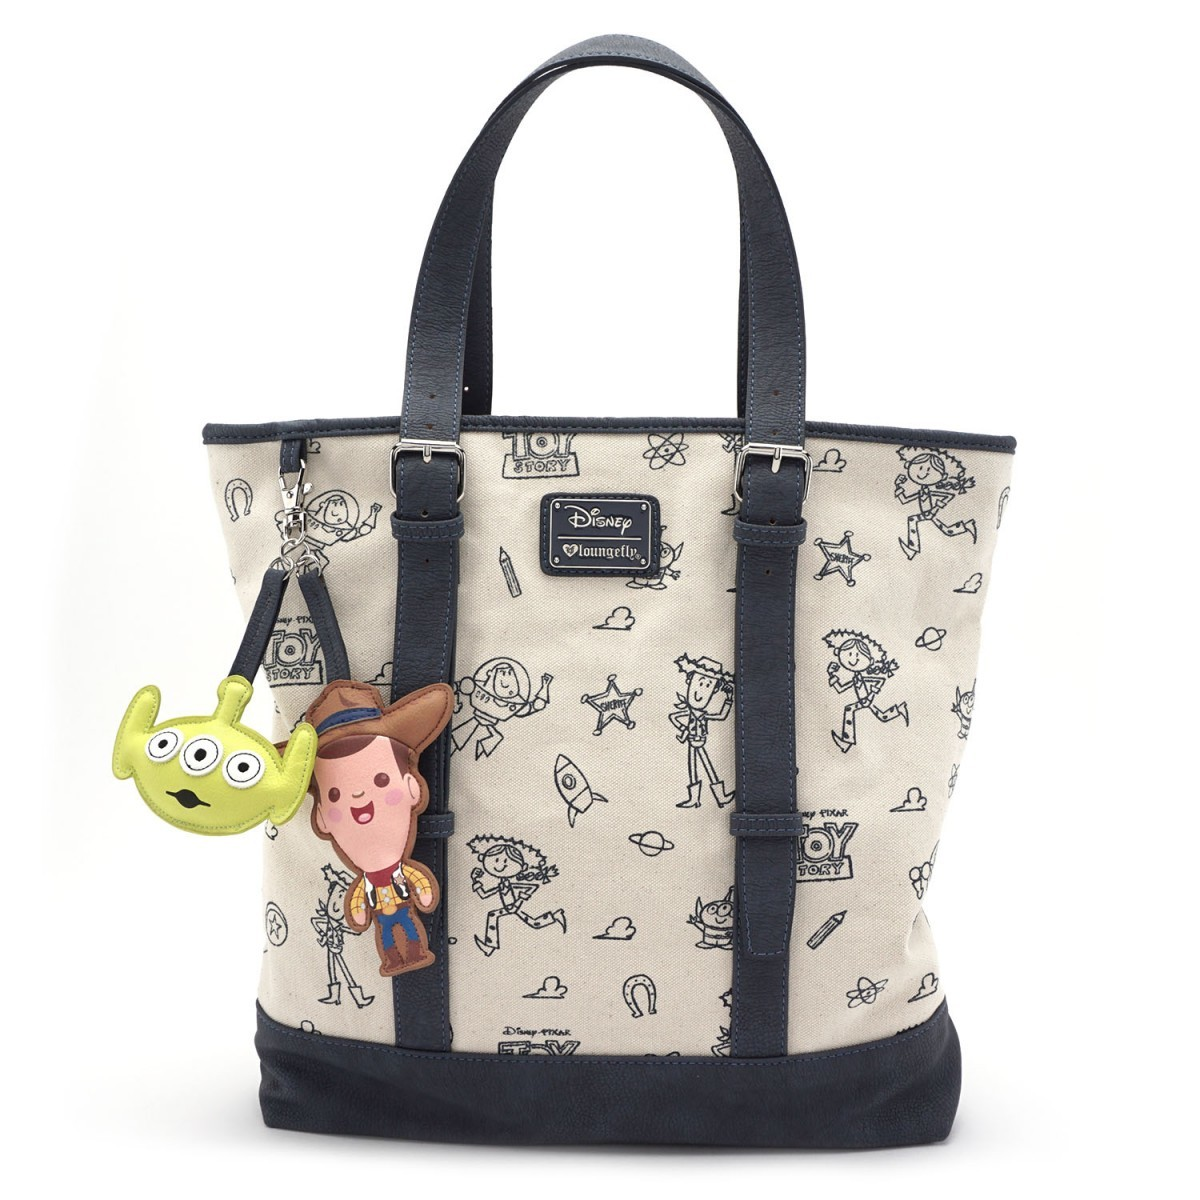 ad283256a7 Pixar Toy Story Tote Bag | Women's | at Mighty Ape Australia